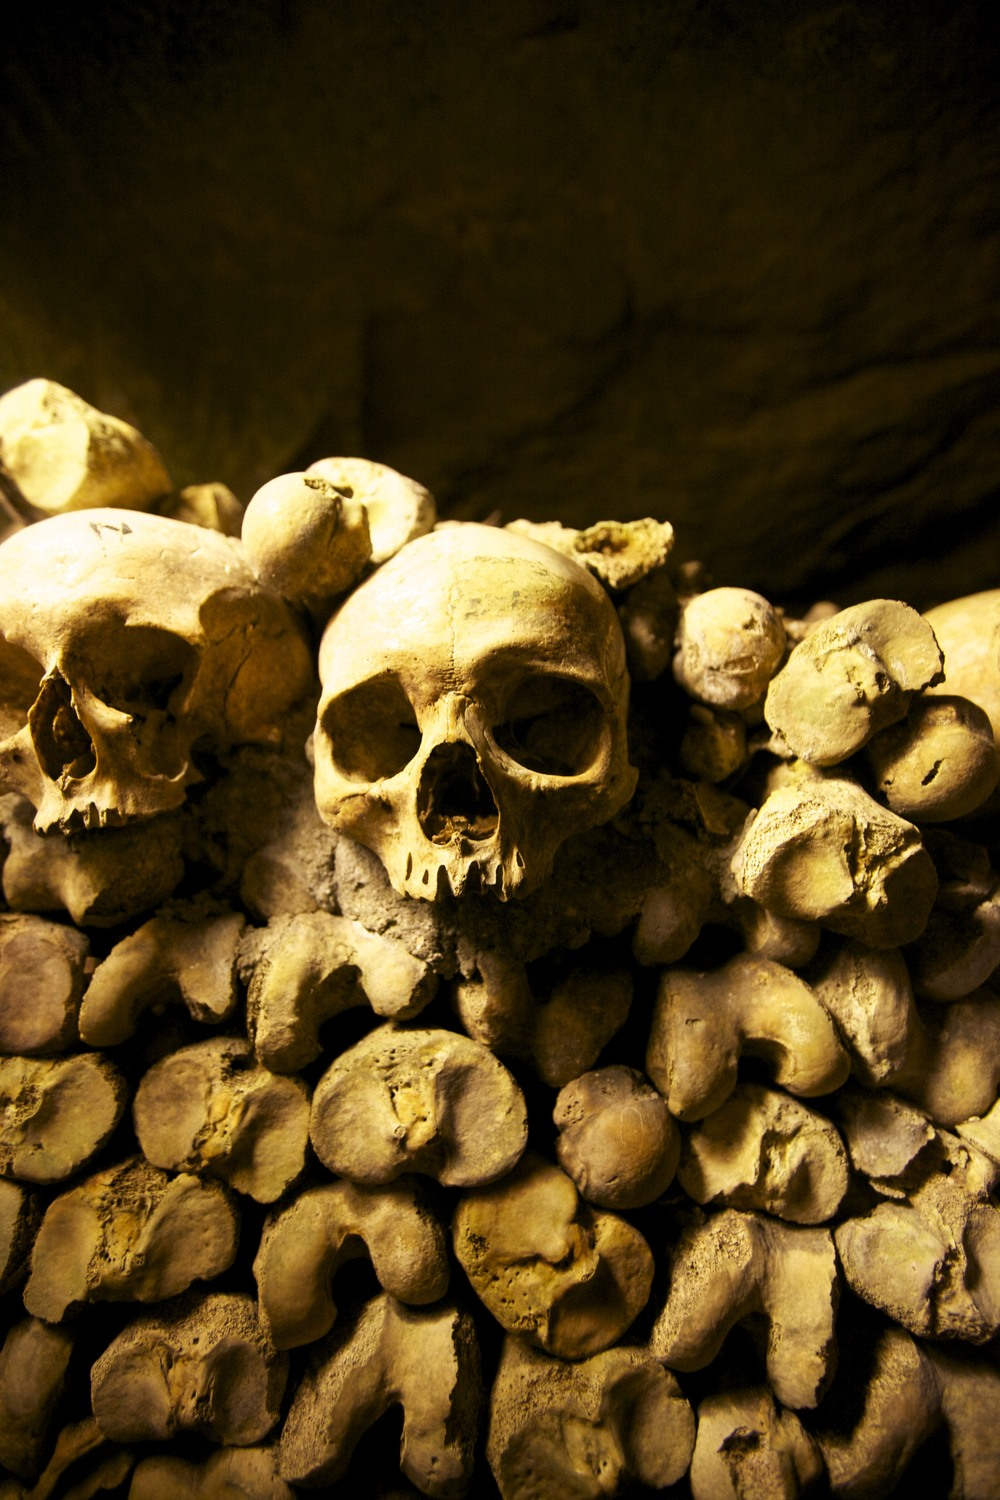 Skulls and bones in the catacombs.